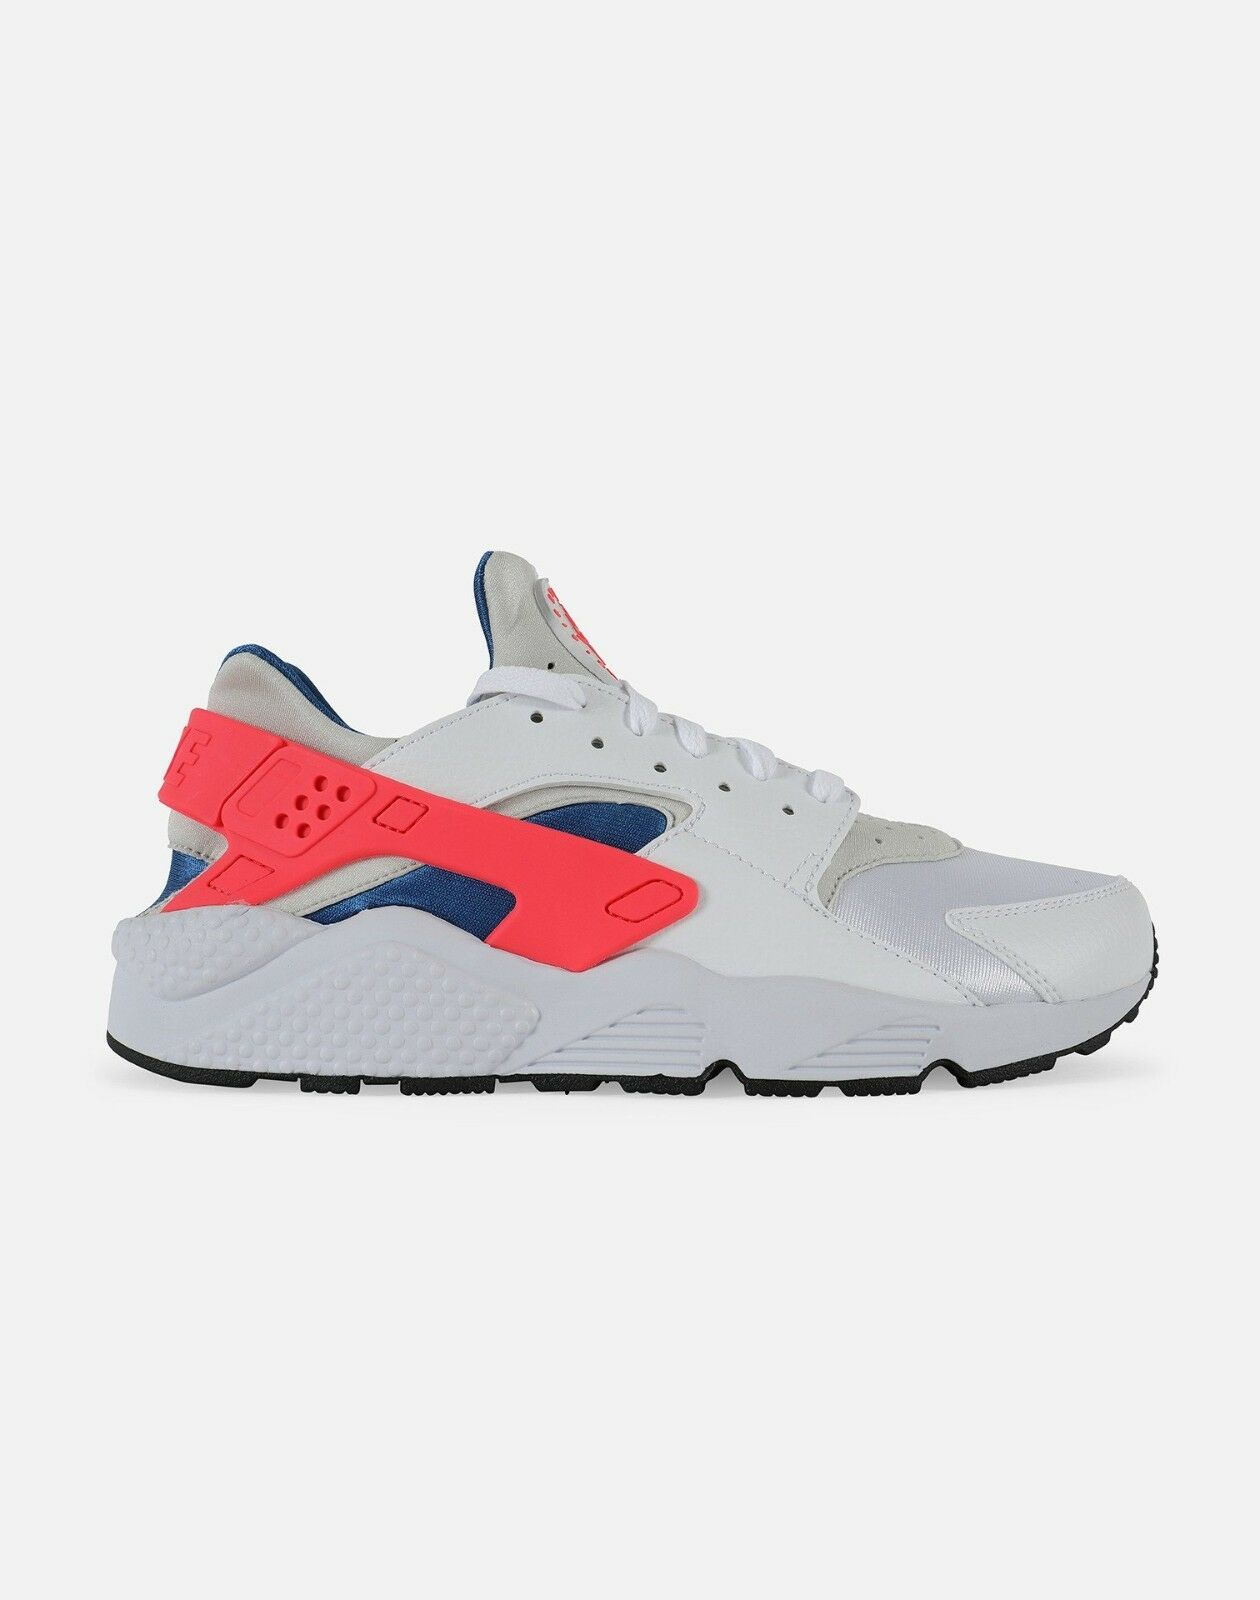 Nike Air SZ Huarache Ultramarine Solar Red Uomo SZ Air 7.5 - 13 b41856